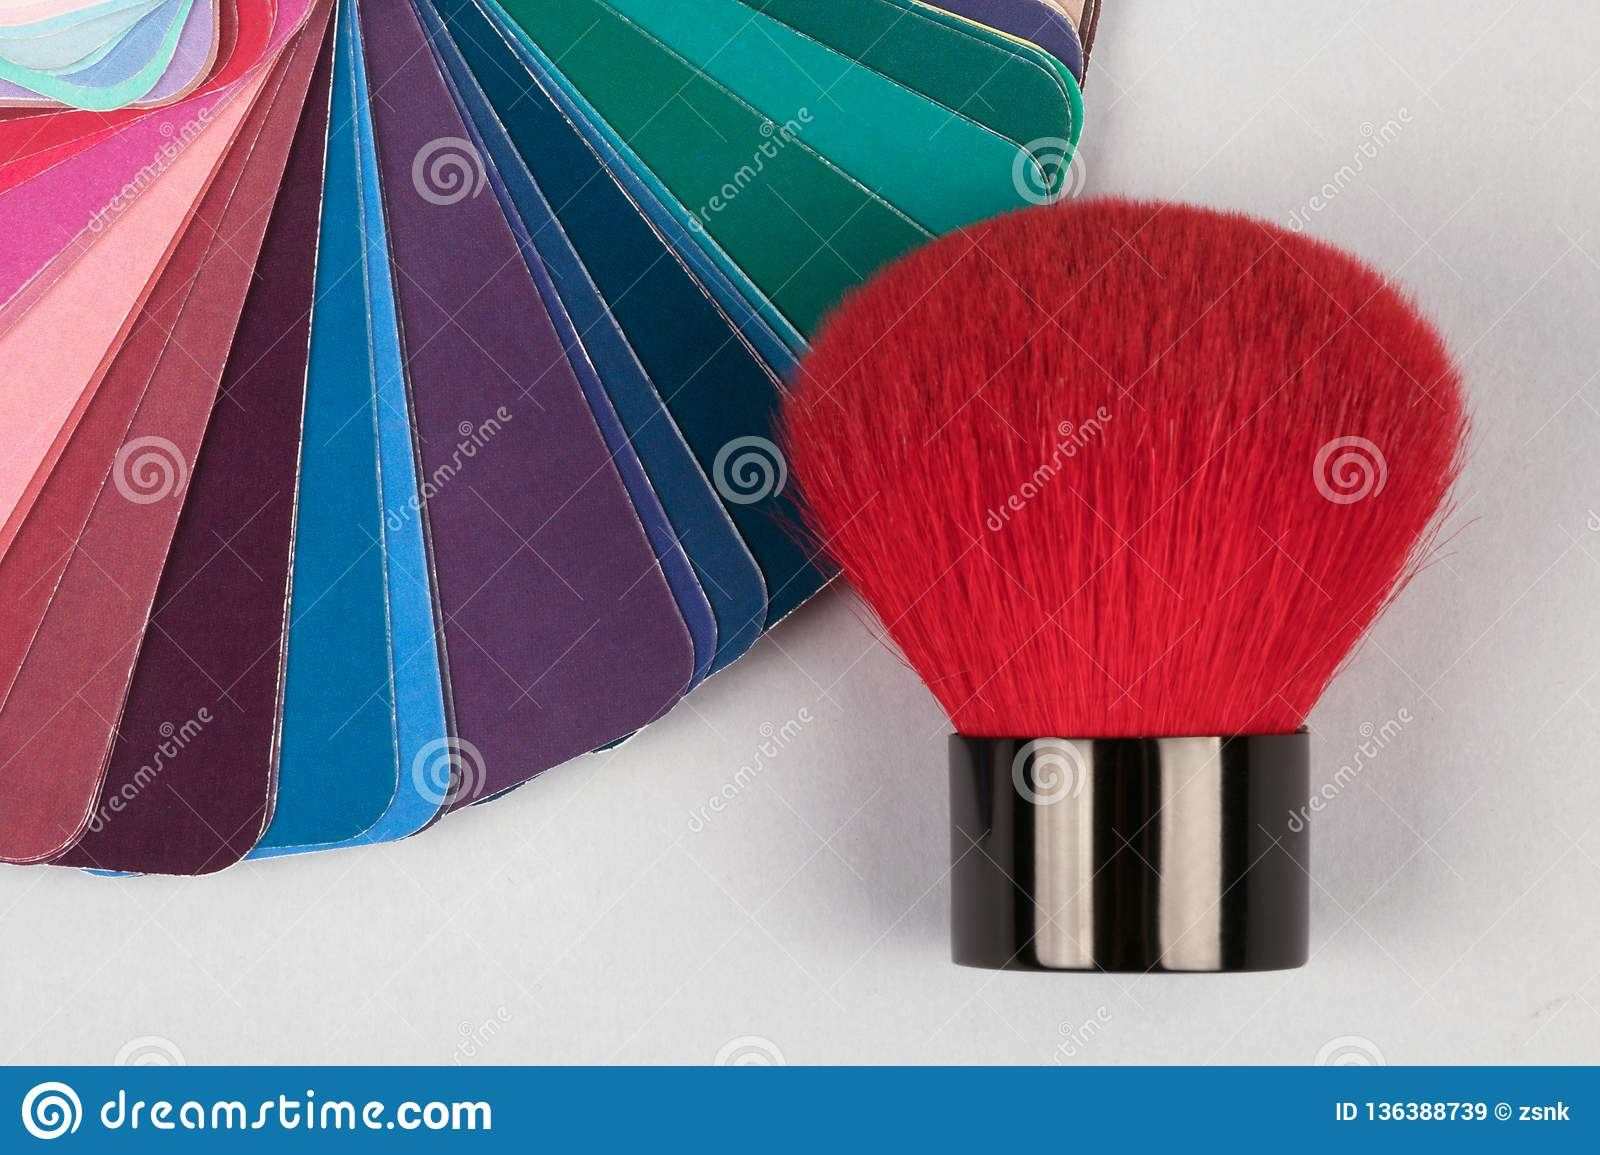 Color fan deck with samples of various paints with red brush for makeup